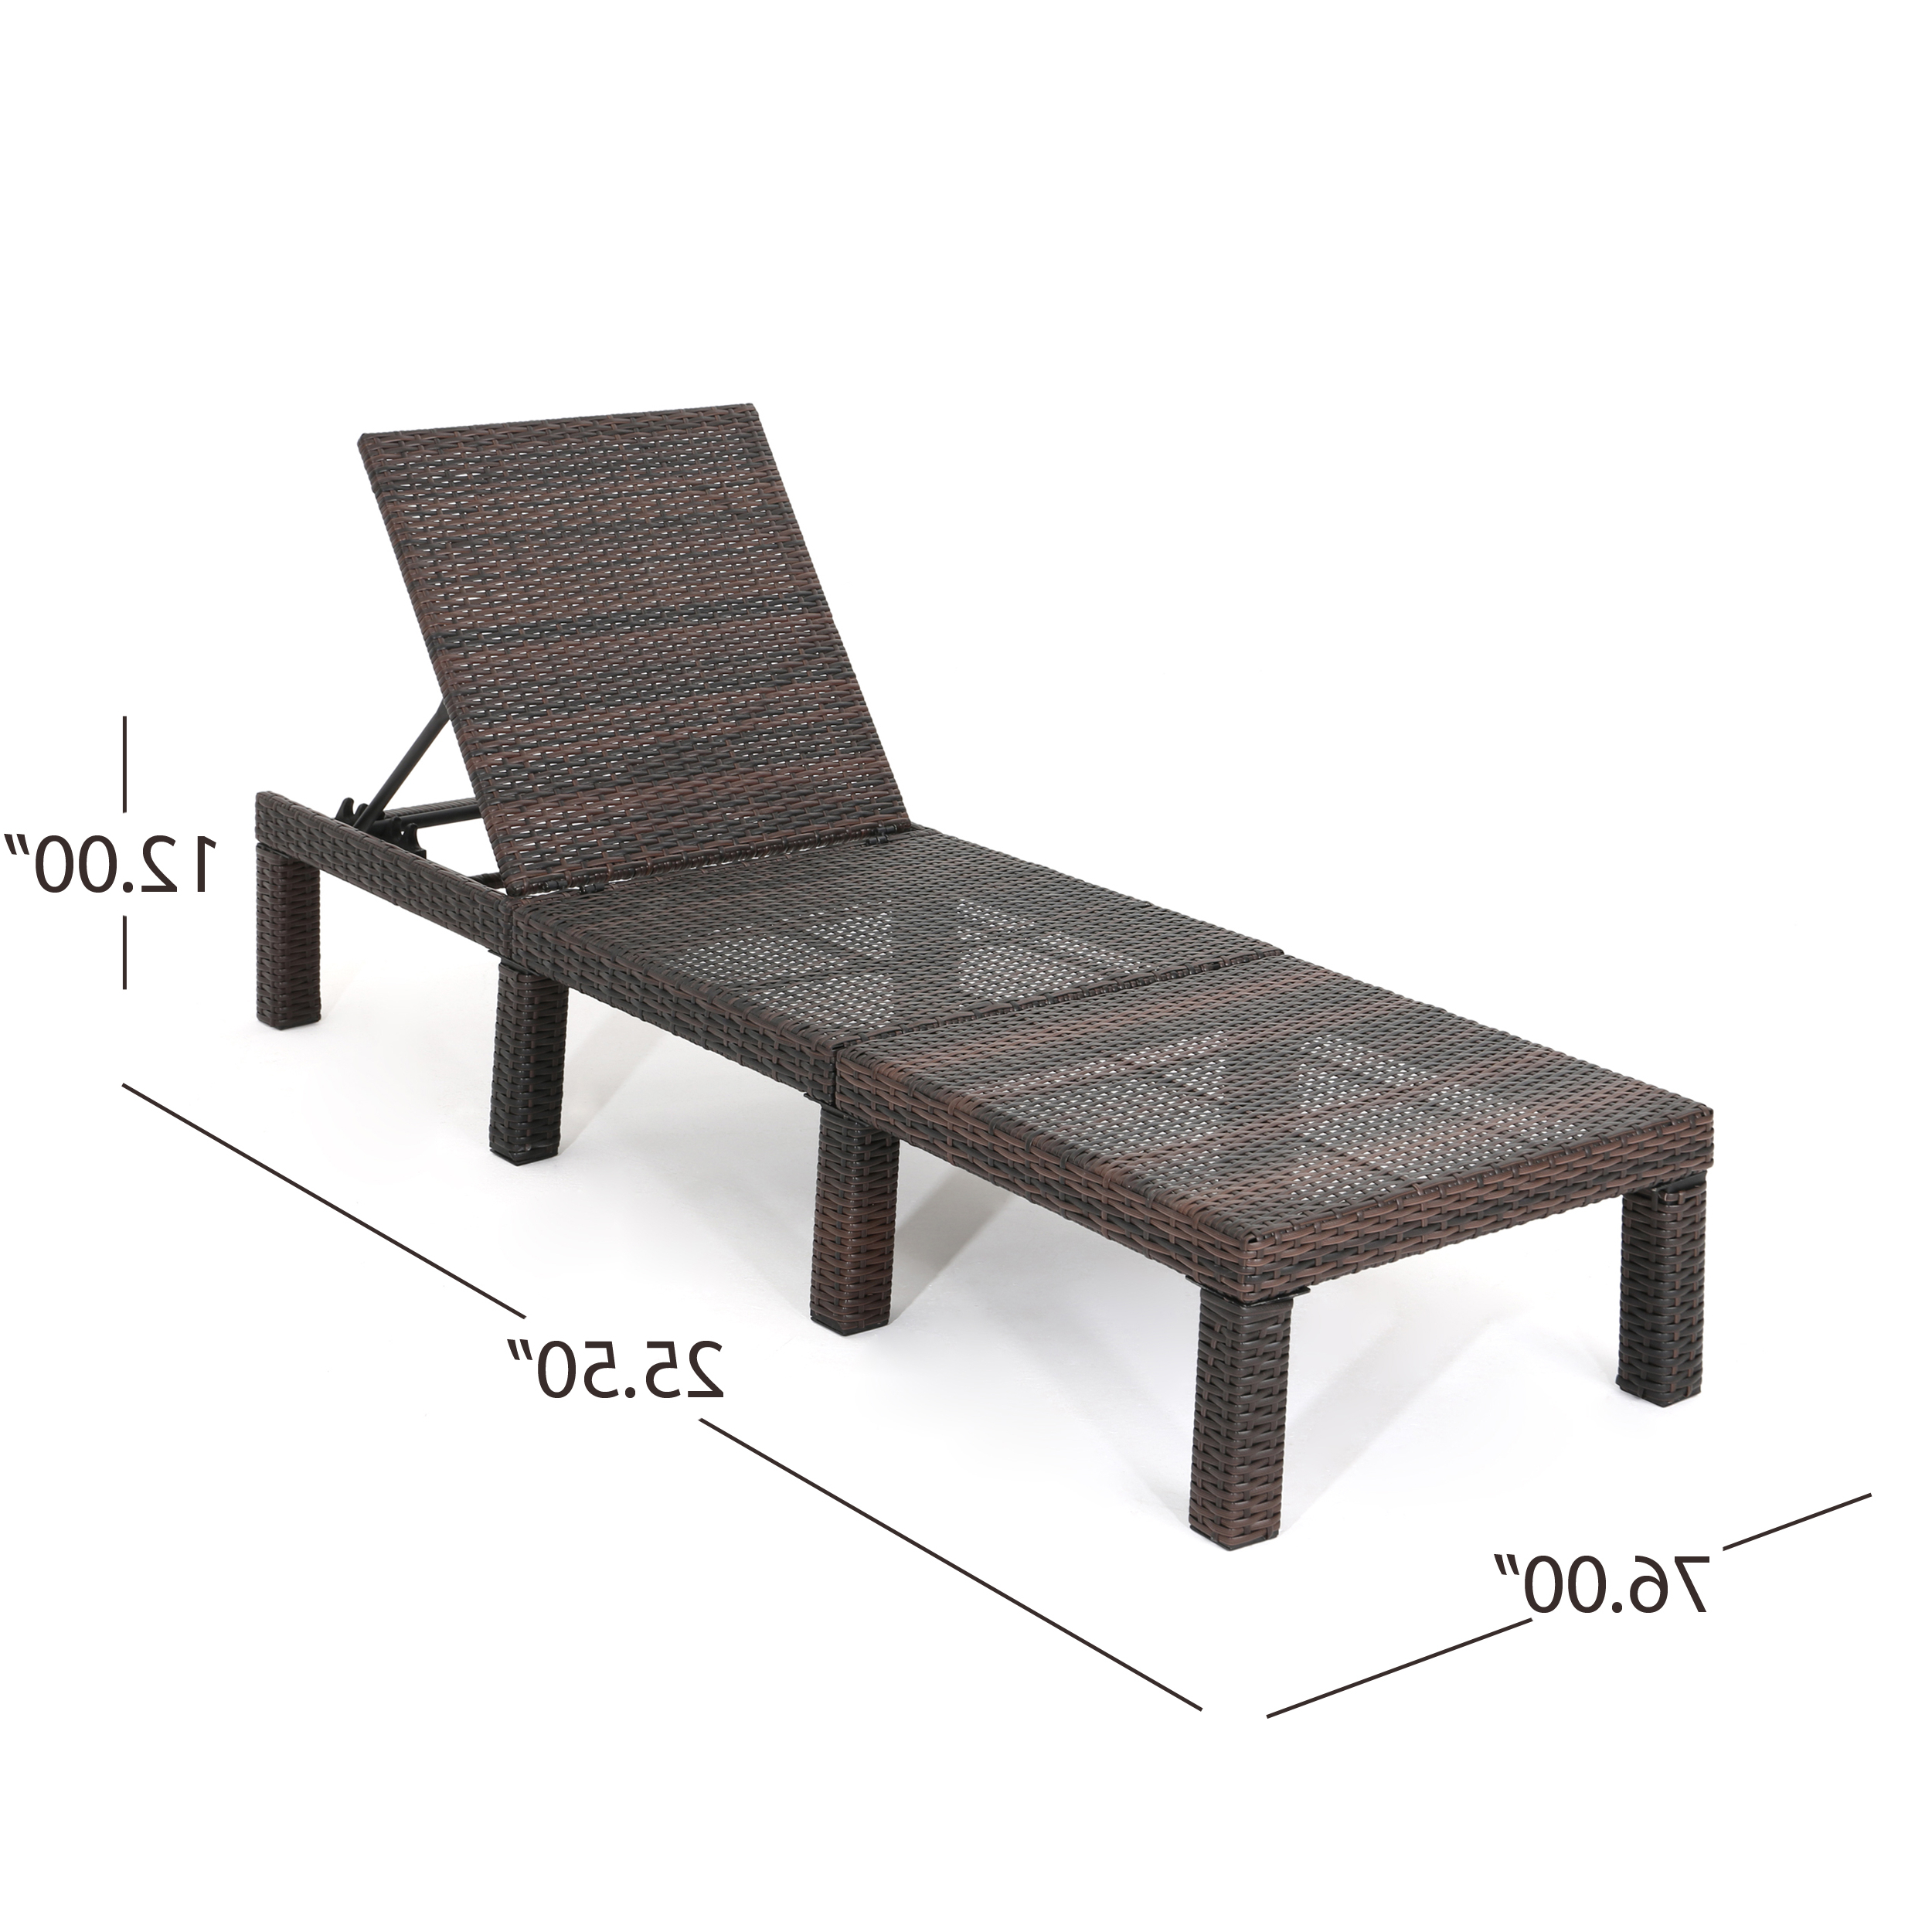 Widely Used Details About Joyce Outdoor Wicker Chaise Lounge With Water Resistant  Cushion In White Wicker Adjustable Chaise Loungers With Cushions (View 25 of 25)